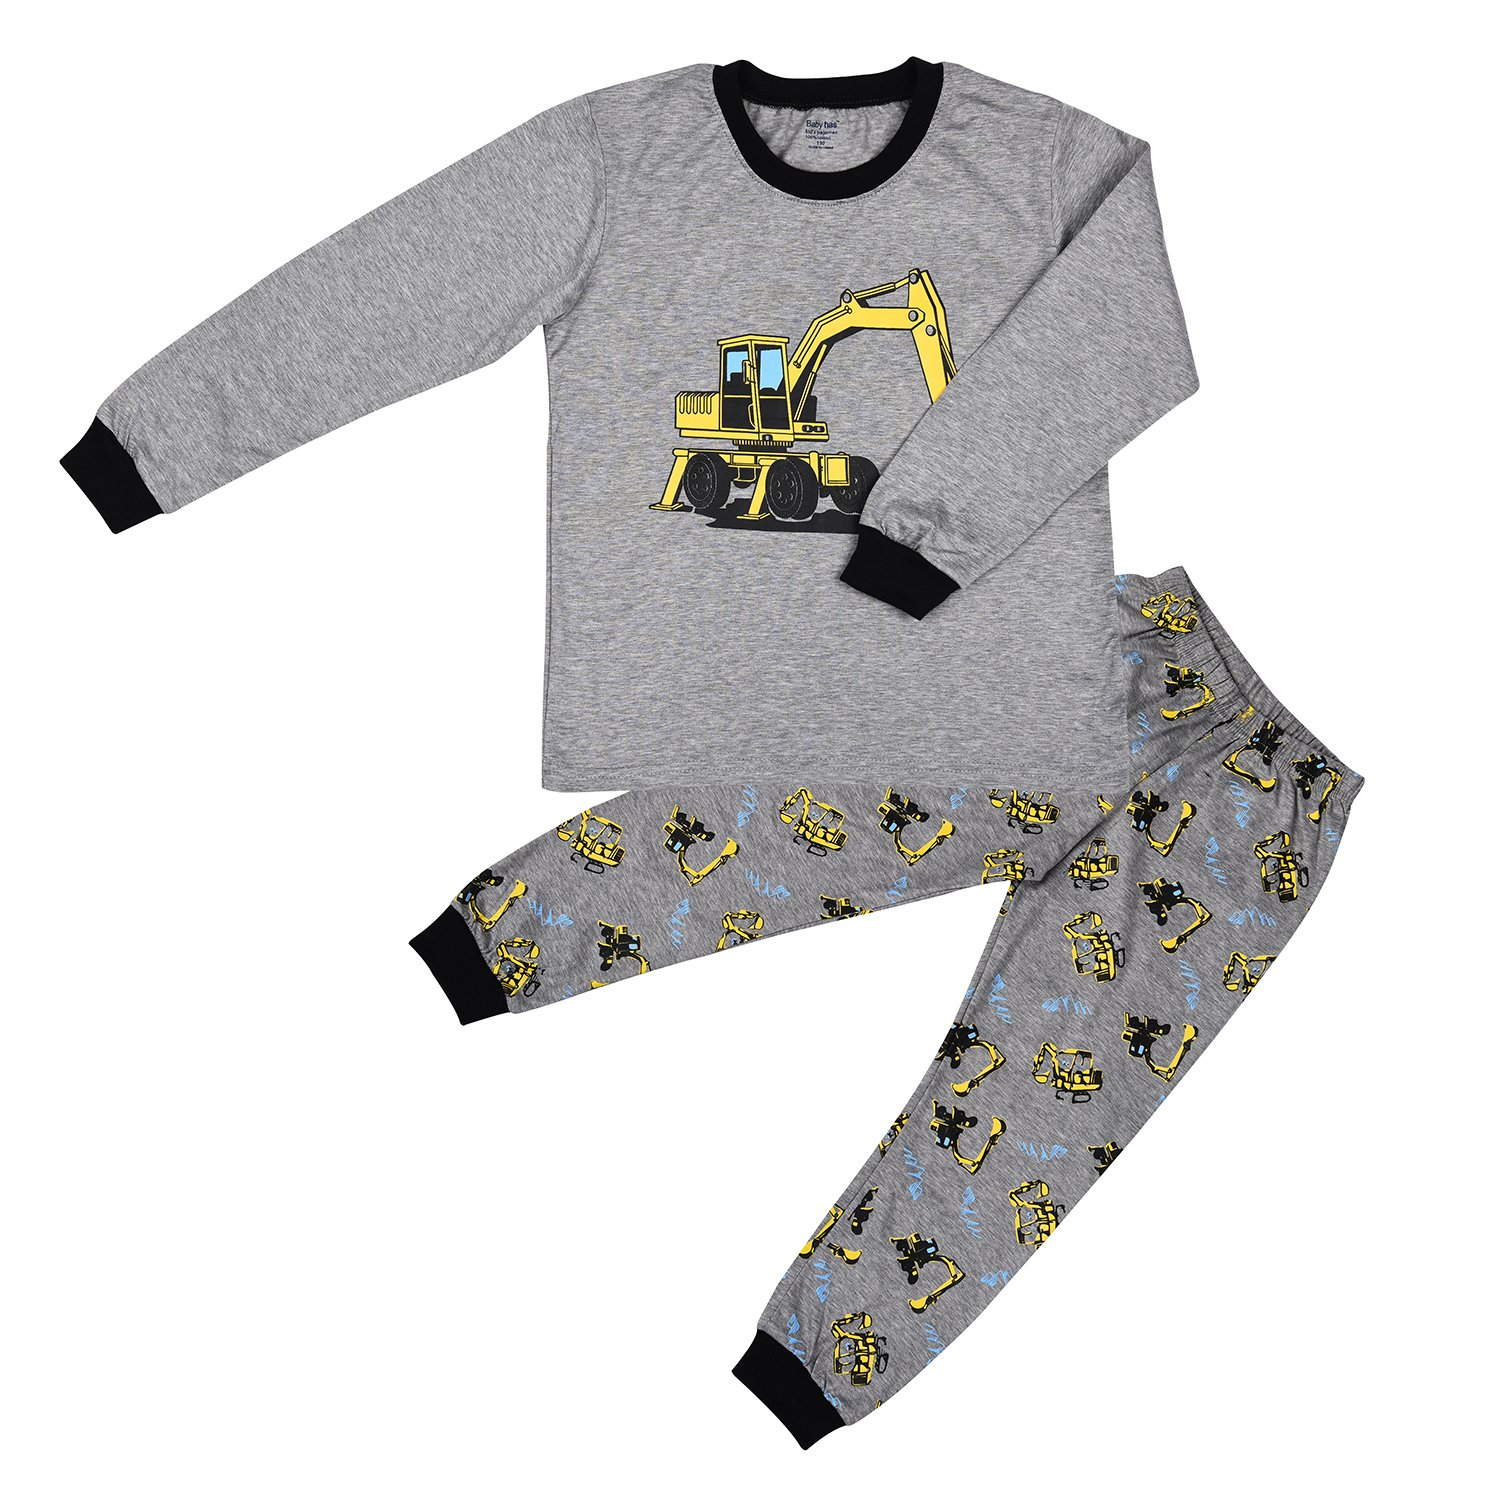 Maygold Boys Pajamas Long Sleeves Set With Airplane Print Grey Size 2T-7T